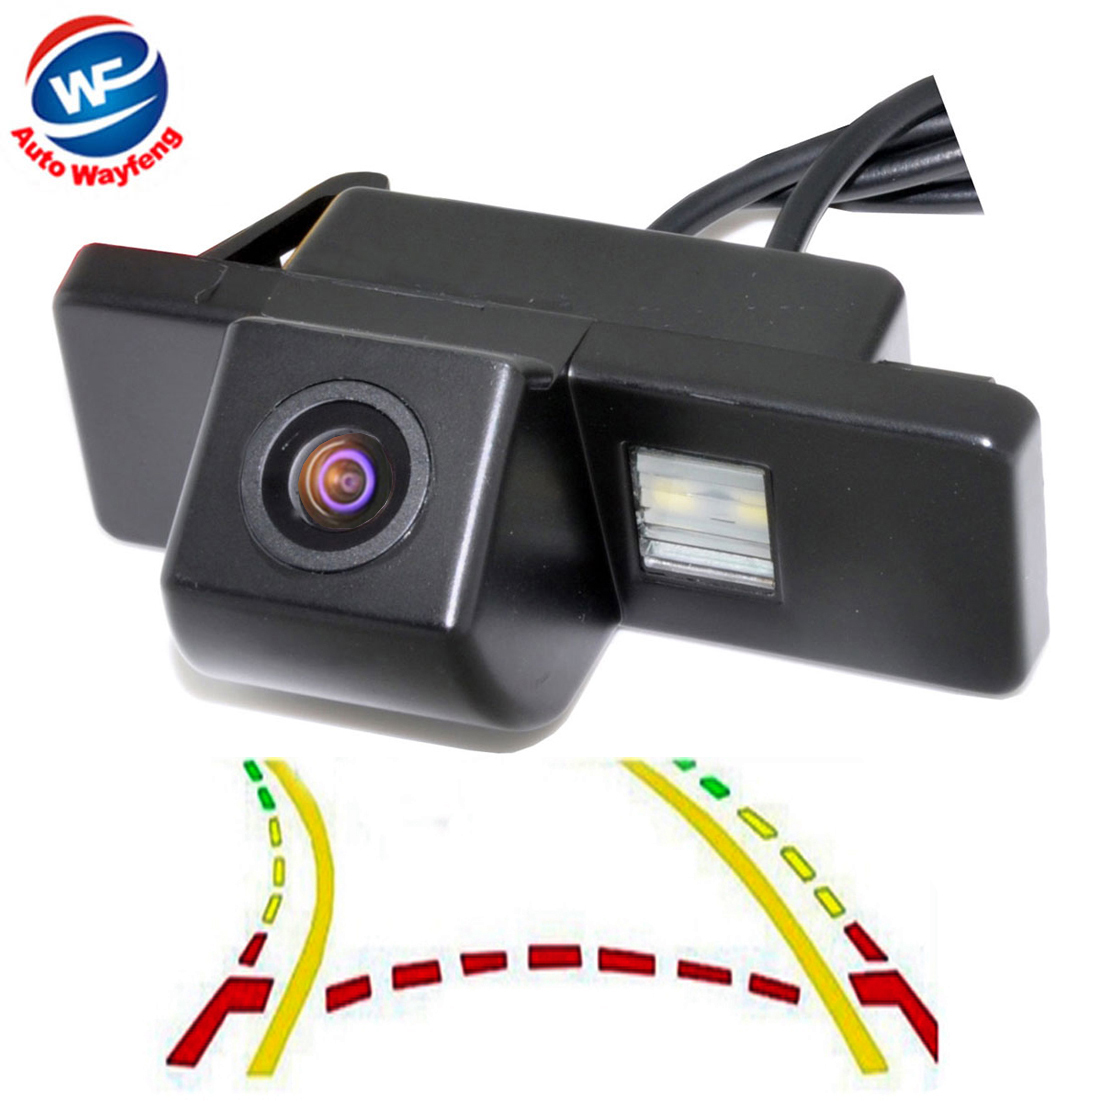 CCD Intelligent Dynamic Trajectory Tracks Rear View Camera for NISSAN Juke QASHQAI/Geniss/Pathfinder/X TRAIL Sunny|Vehicle Camera| - AliExpress